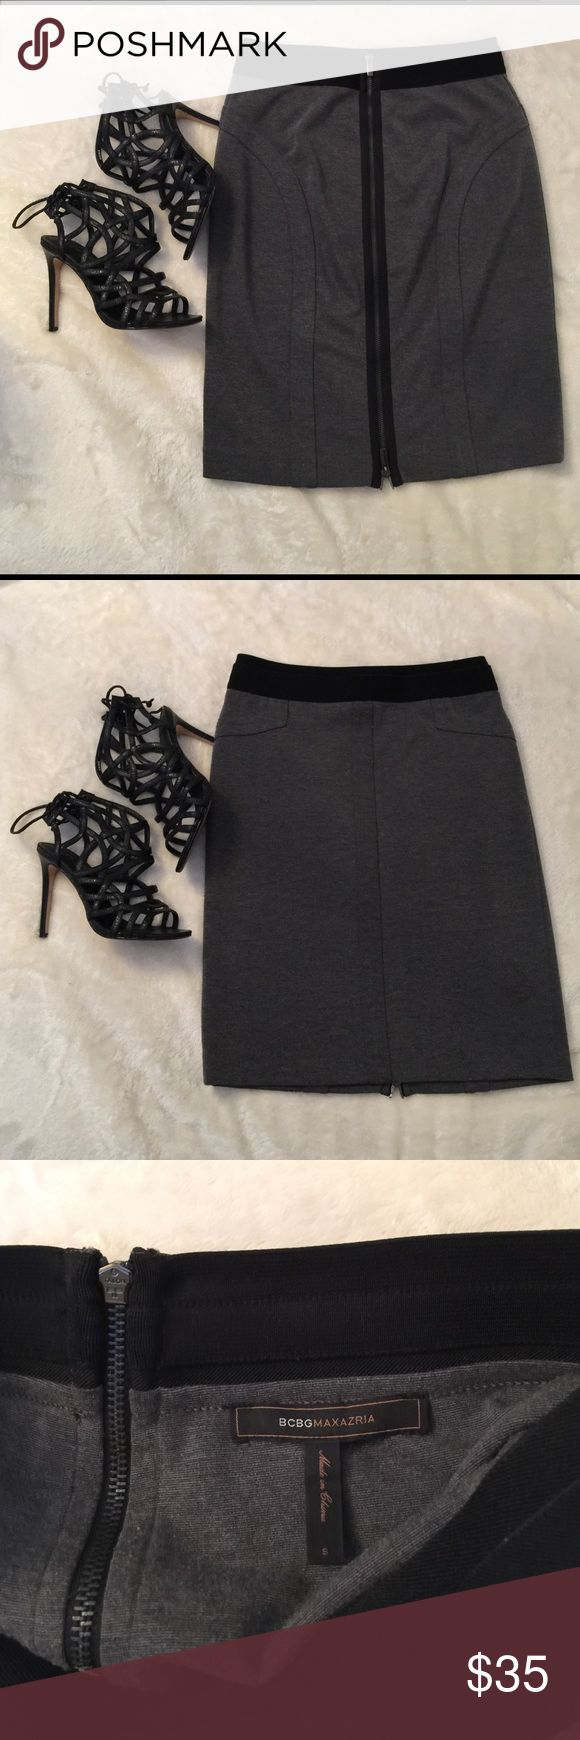 BCBG zip up skirt🍂 Super classy staple piece! Purchased at the BcbgMaxazria store, size small but fits a medium as well- has some stretch to it. in good condition! BCBGMaxAzria Skirts Pencil